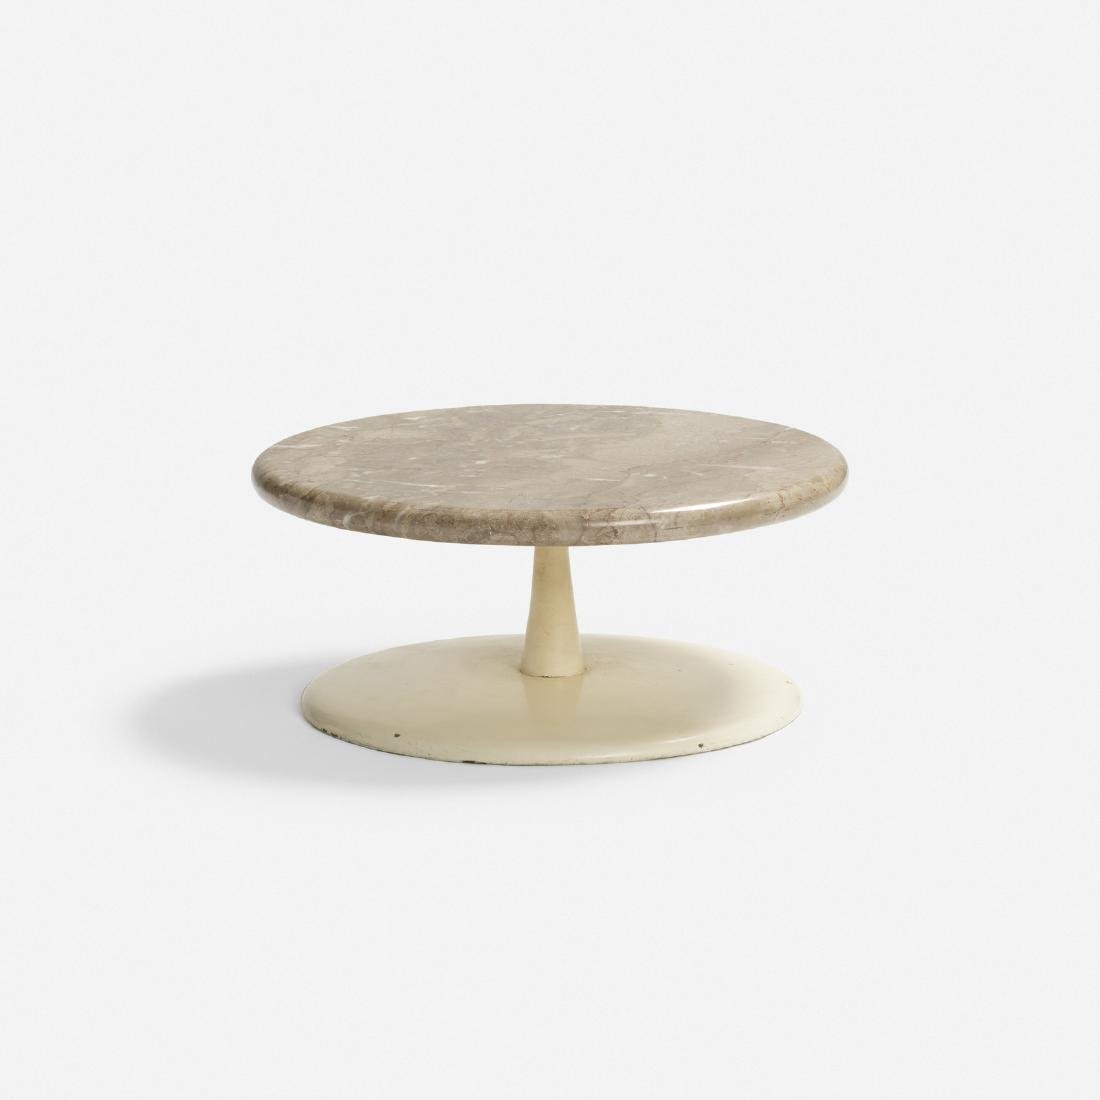 Erwine and Estelle Laverne, occasional table